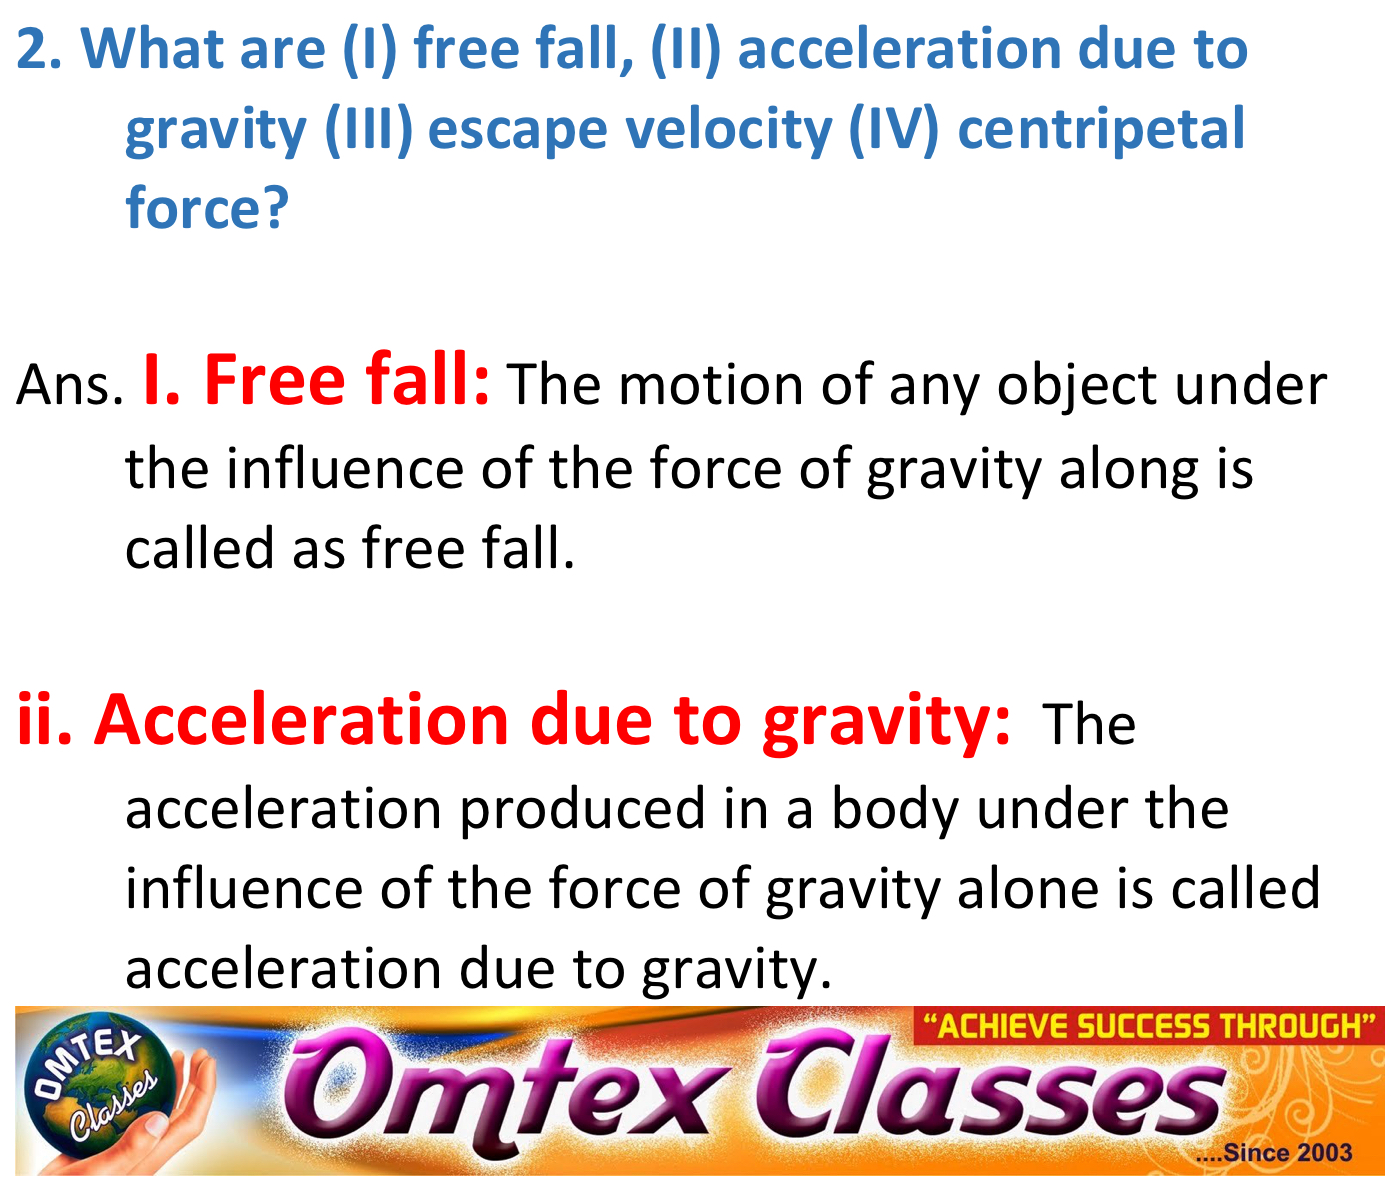 free fall acceleration due to gravity lab report Physics task-epi report and relating questionsdocx  calculate mass of cork floating on water (specific gravity given) a cork of specific gravity 015 floats on water(sp gravity 1025) with 10cc above the surface.